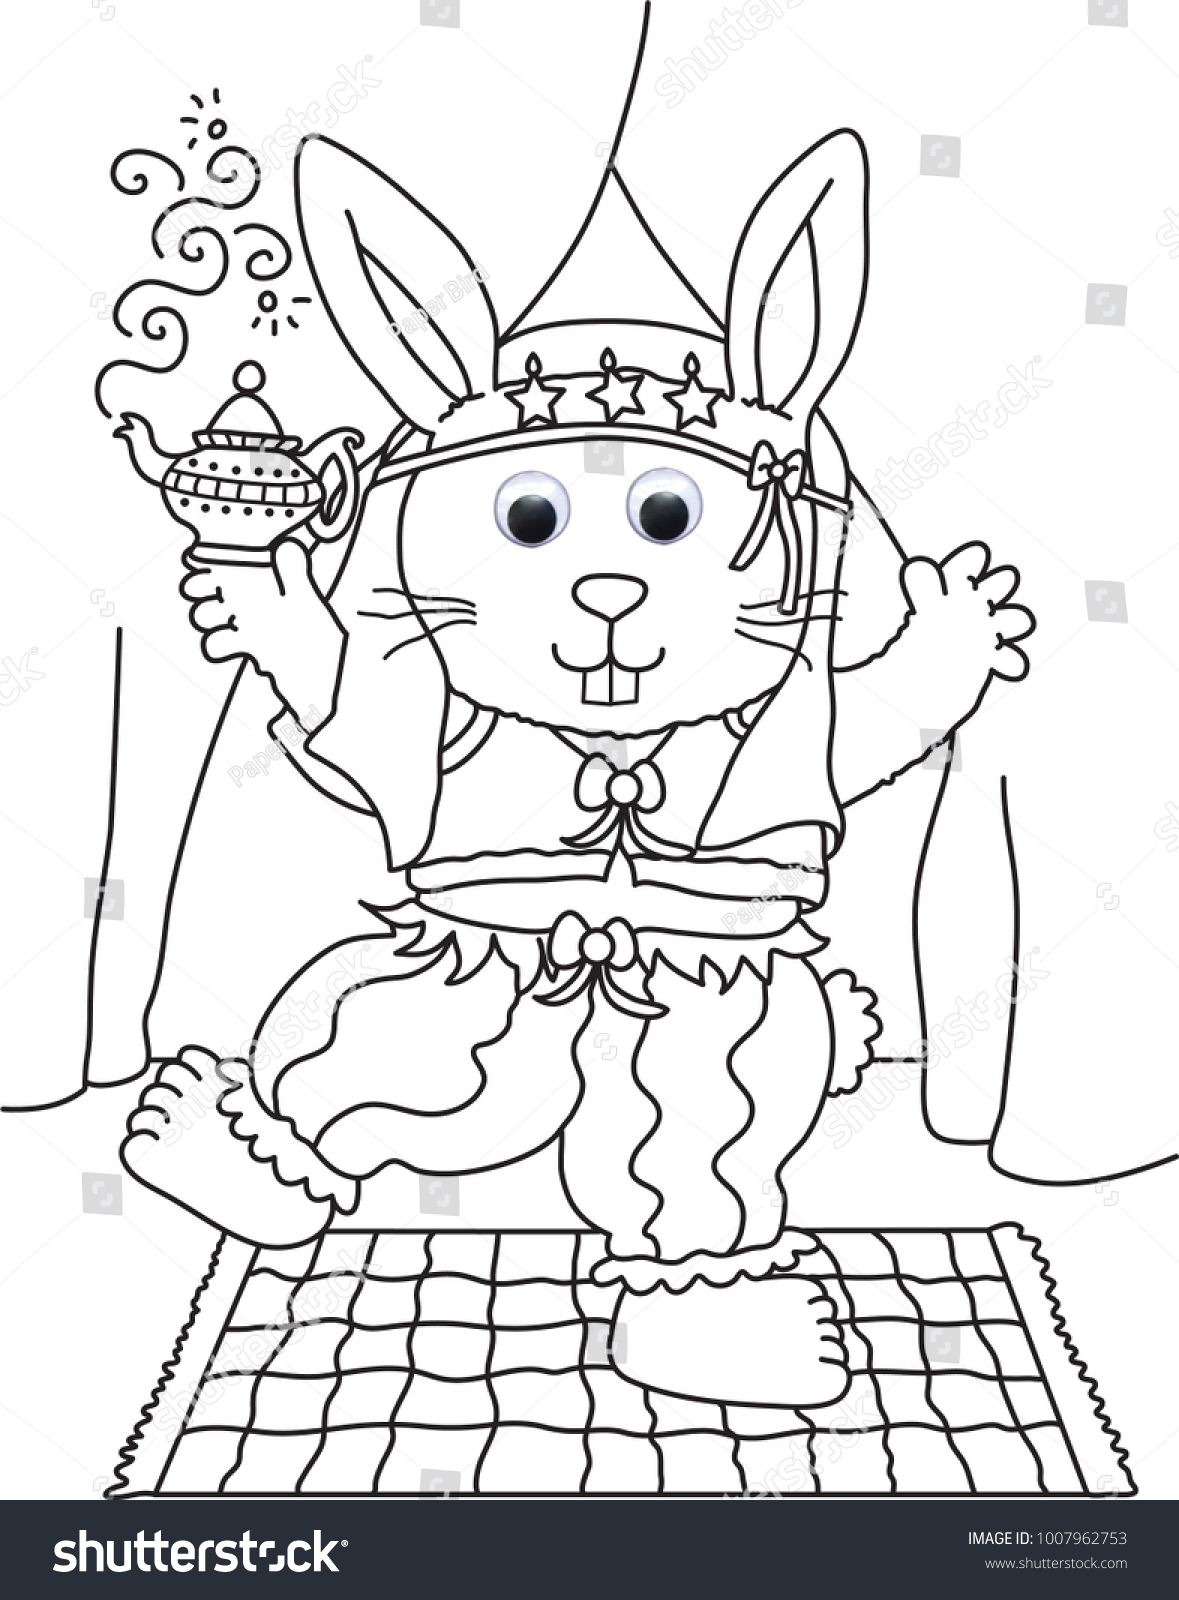 Dress Bunny Colouring Images Kids Colouring Stock Illustration ...